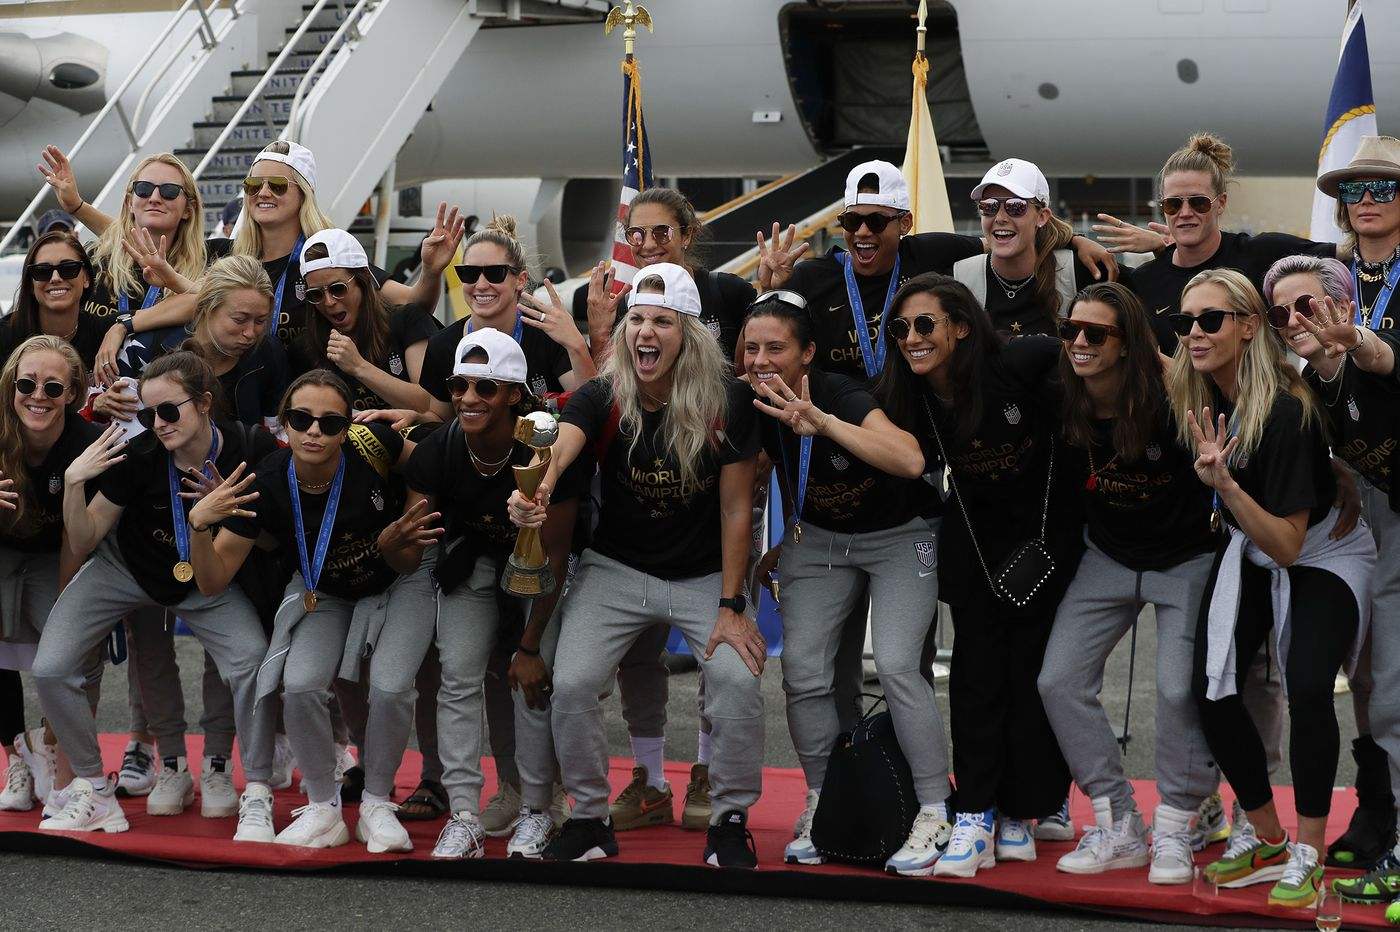 U.S. women's soccer team deserves something that lasts longer than a parade this time | Bob Ford